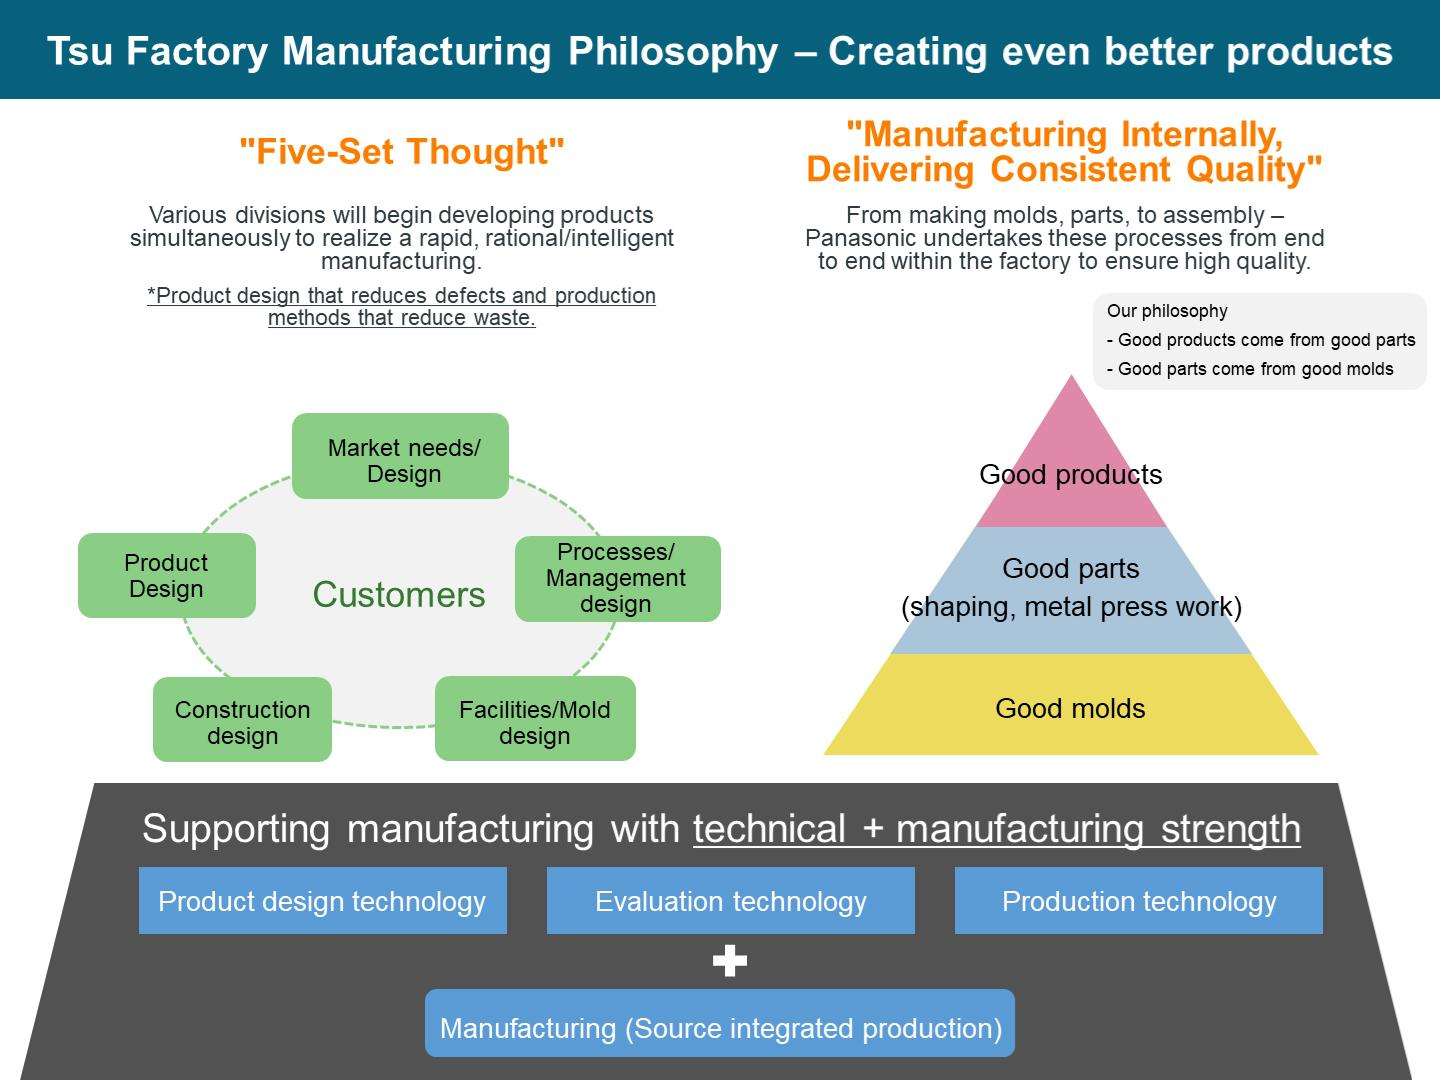 figure: Tsu Factory Manufacturing Philosophy - Creating even better products